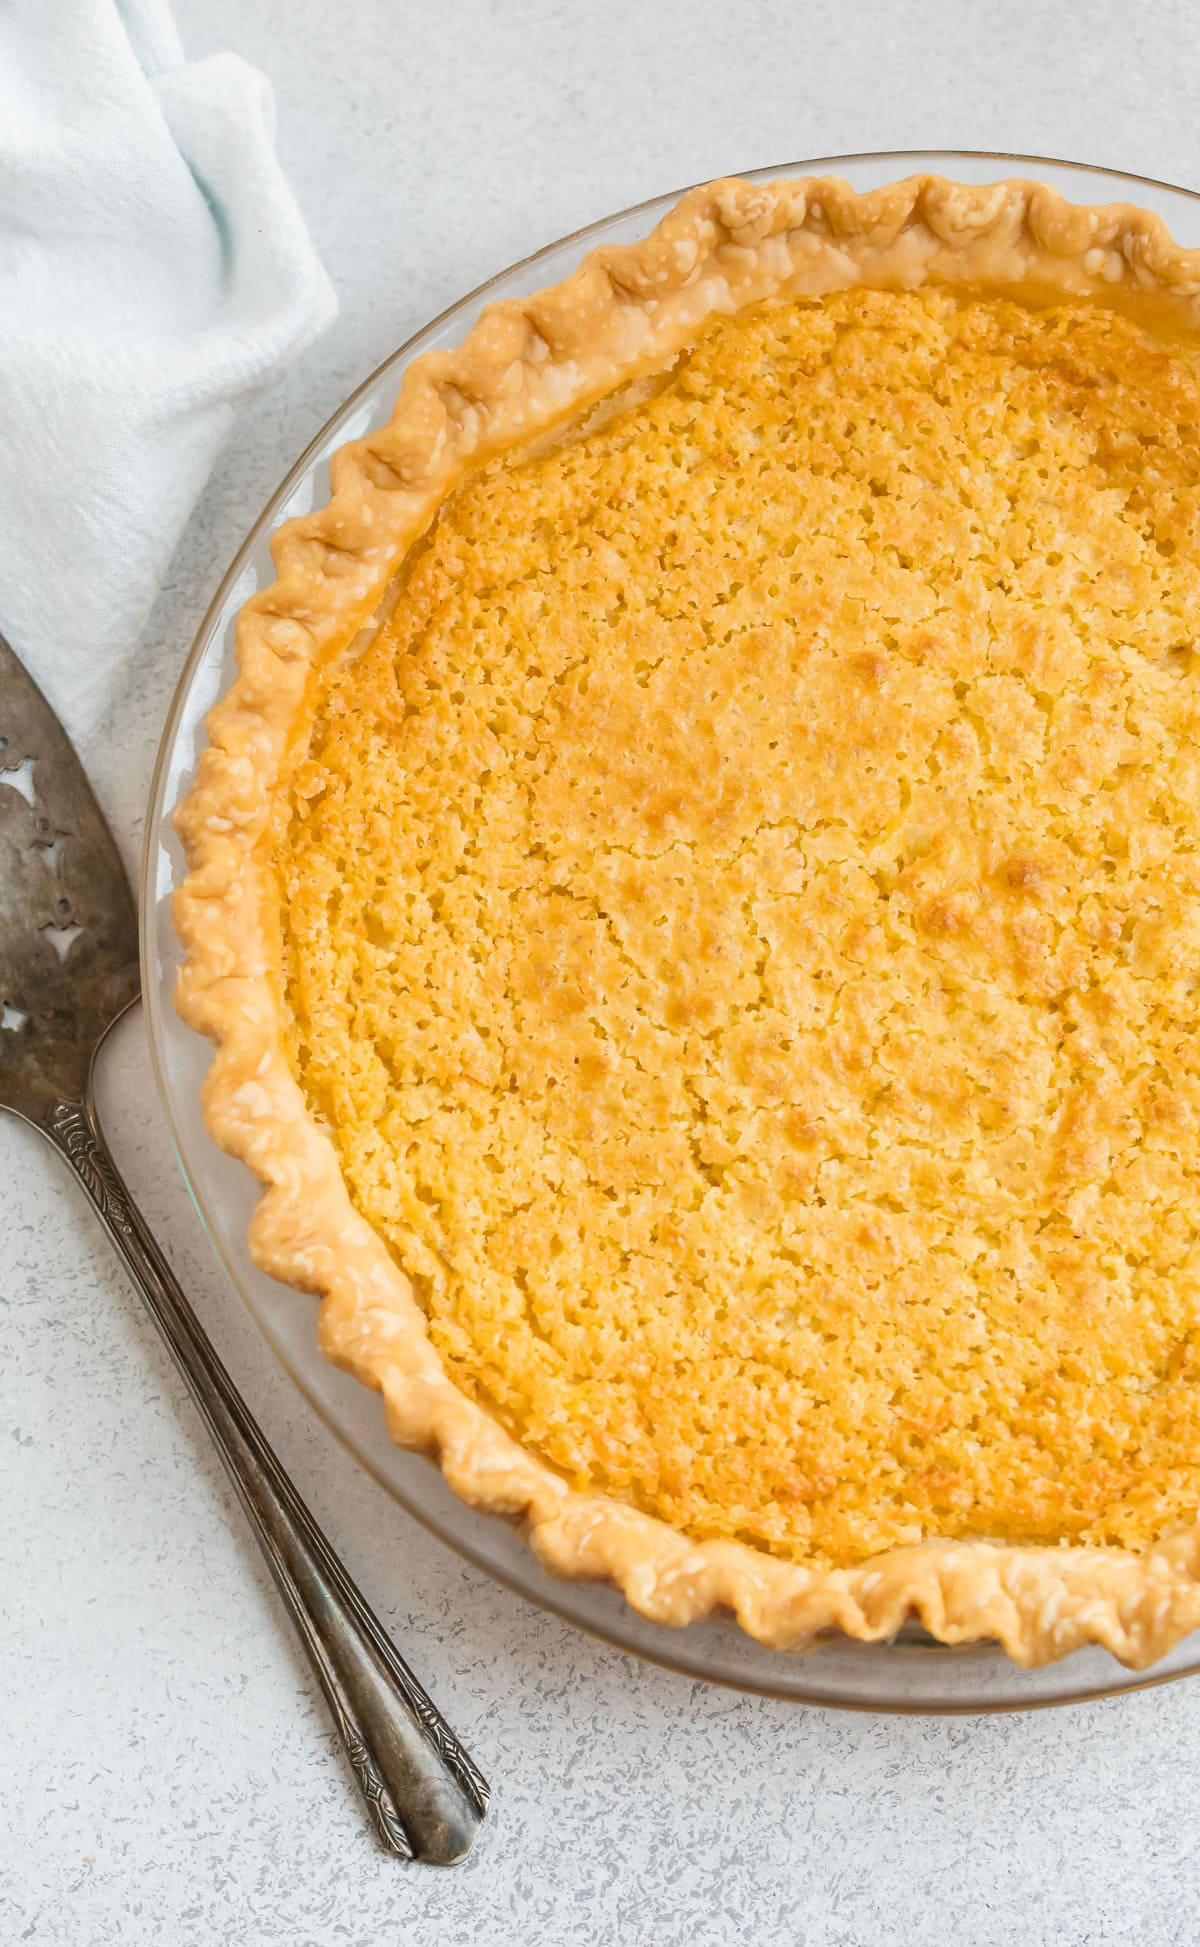 Old fashioned buttermilk pie with a flaky, buttery crust in a pie dish